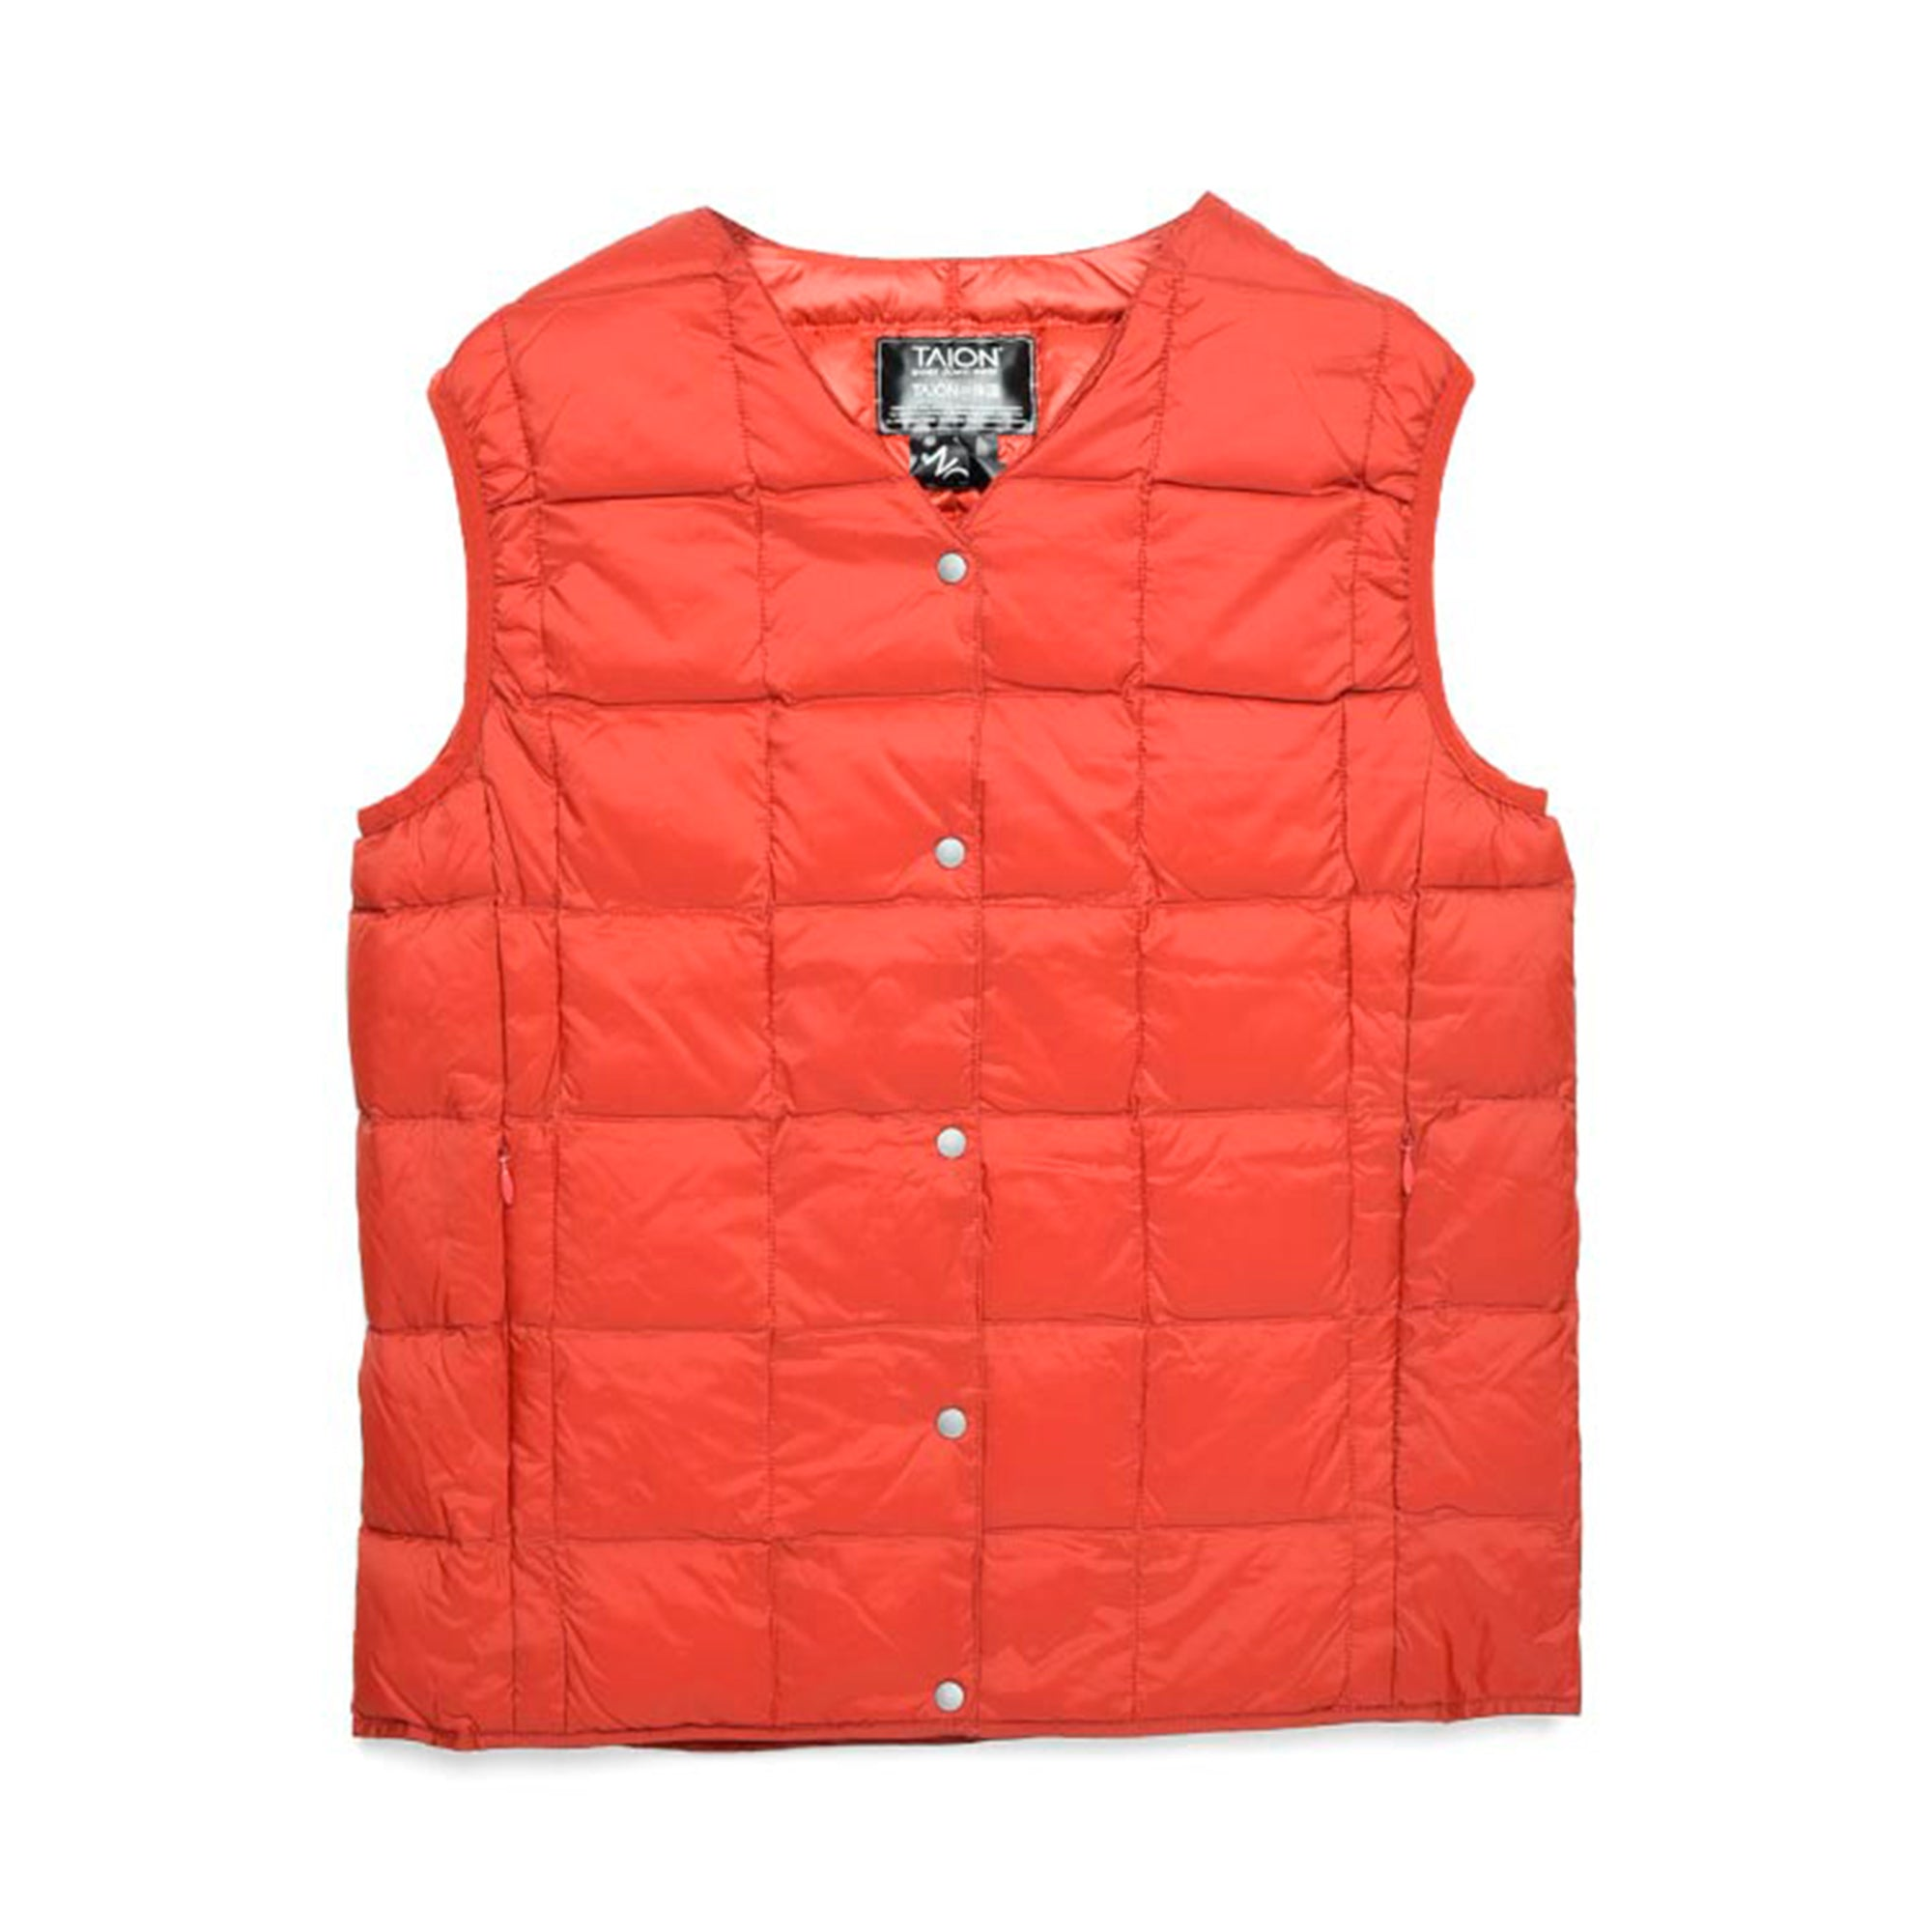 Taion Womens V Neck Button Down Vest: Brick Red - The Union Project